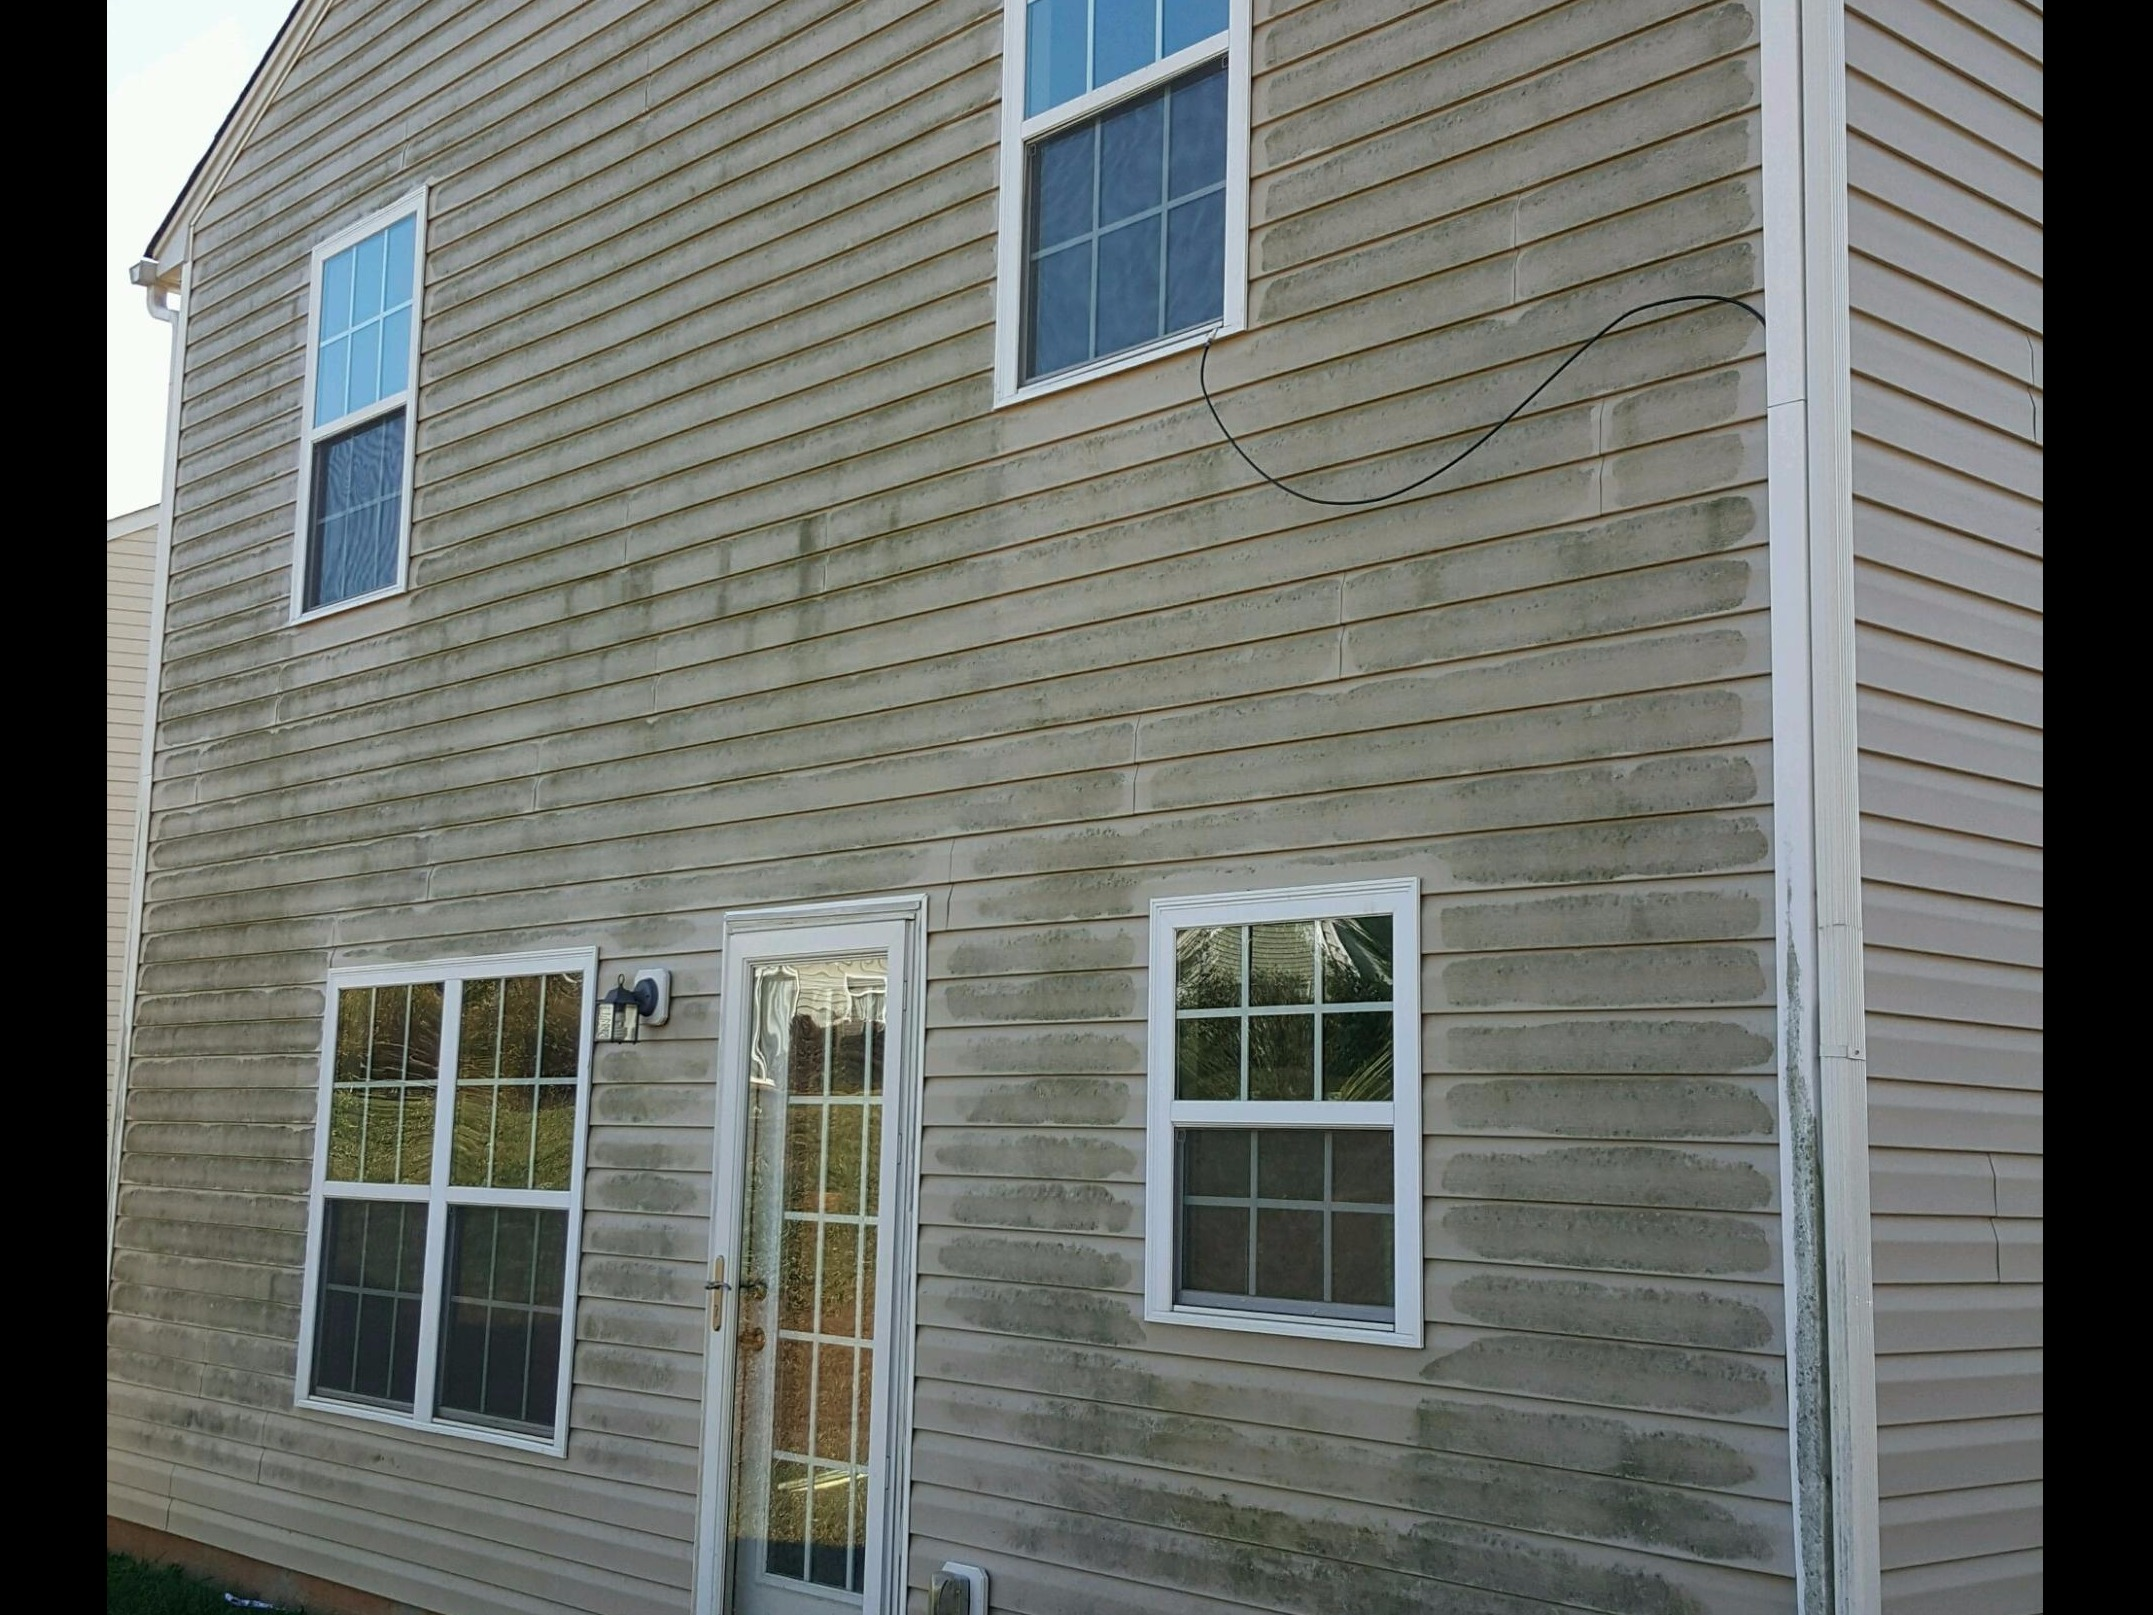 Cleaning house siding exterior 28 images roof cleaning and exterior cleaning by pro exterior - Exterior home cleaning ...